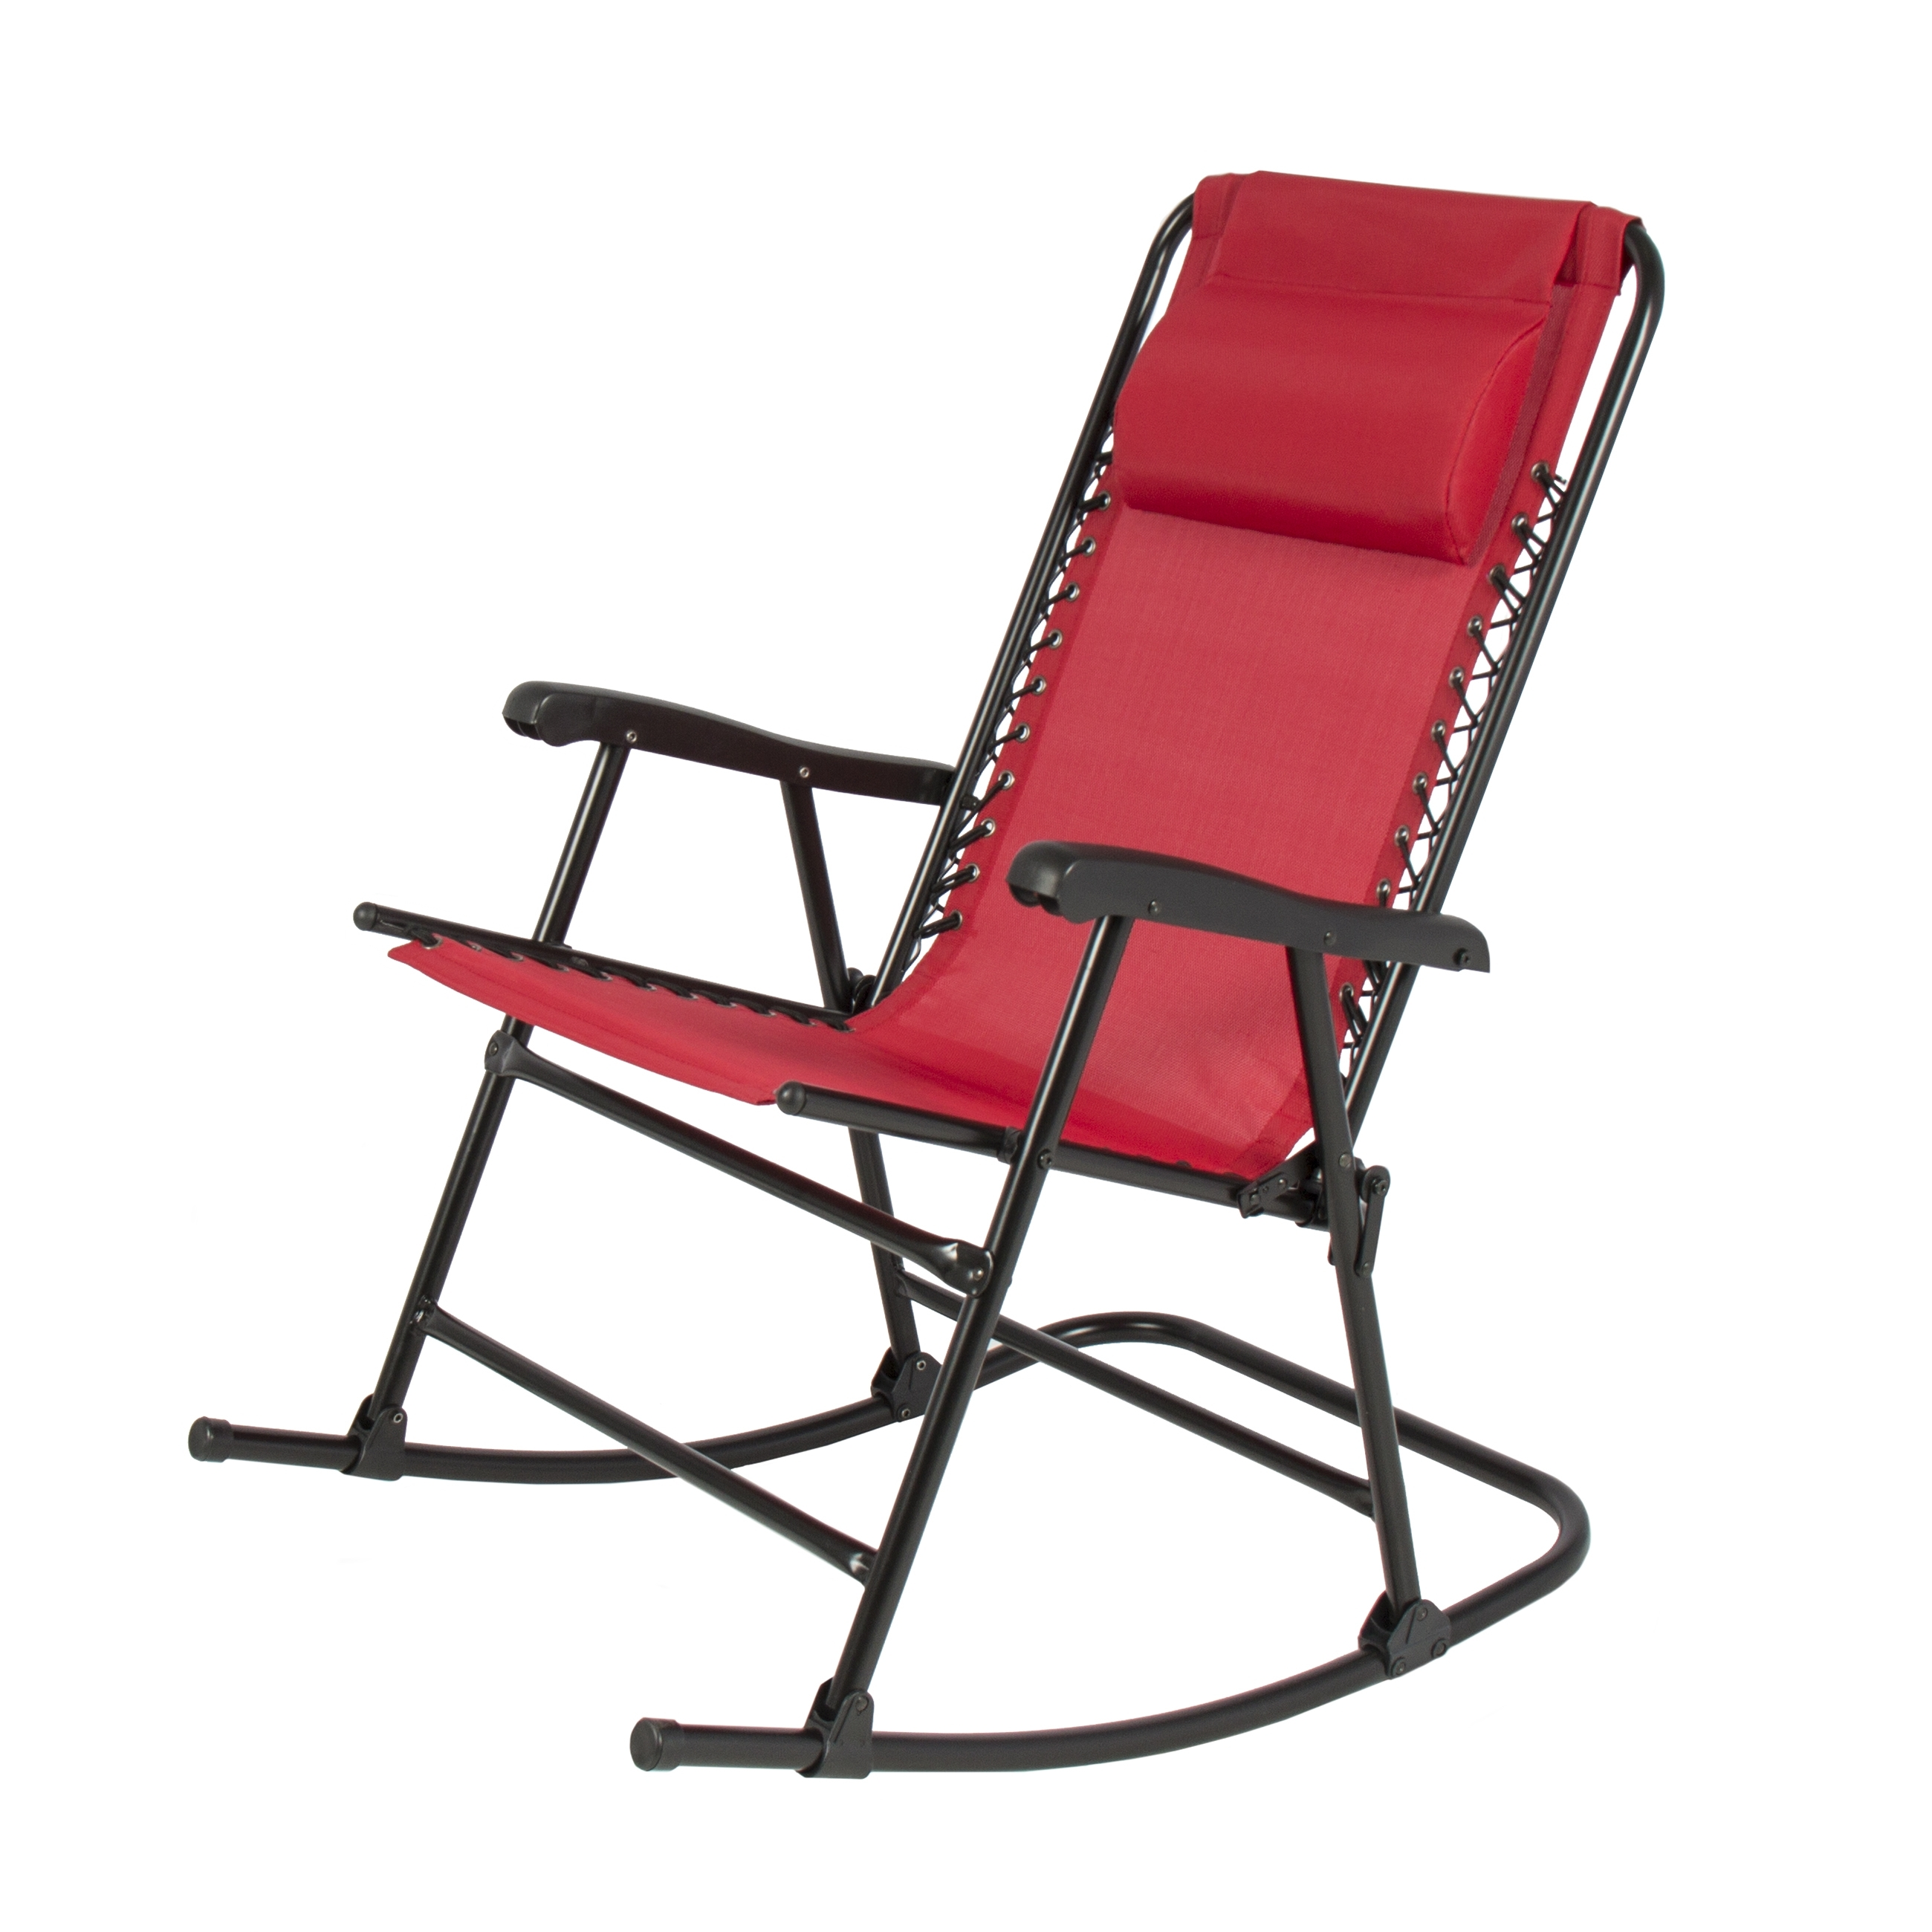 Red Patio Rocking Chairs Intended For Most Recent Amazing Of Rocking Patio Chairs Folding Rocking Chair Foldable (View 4 of 20)